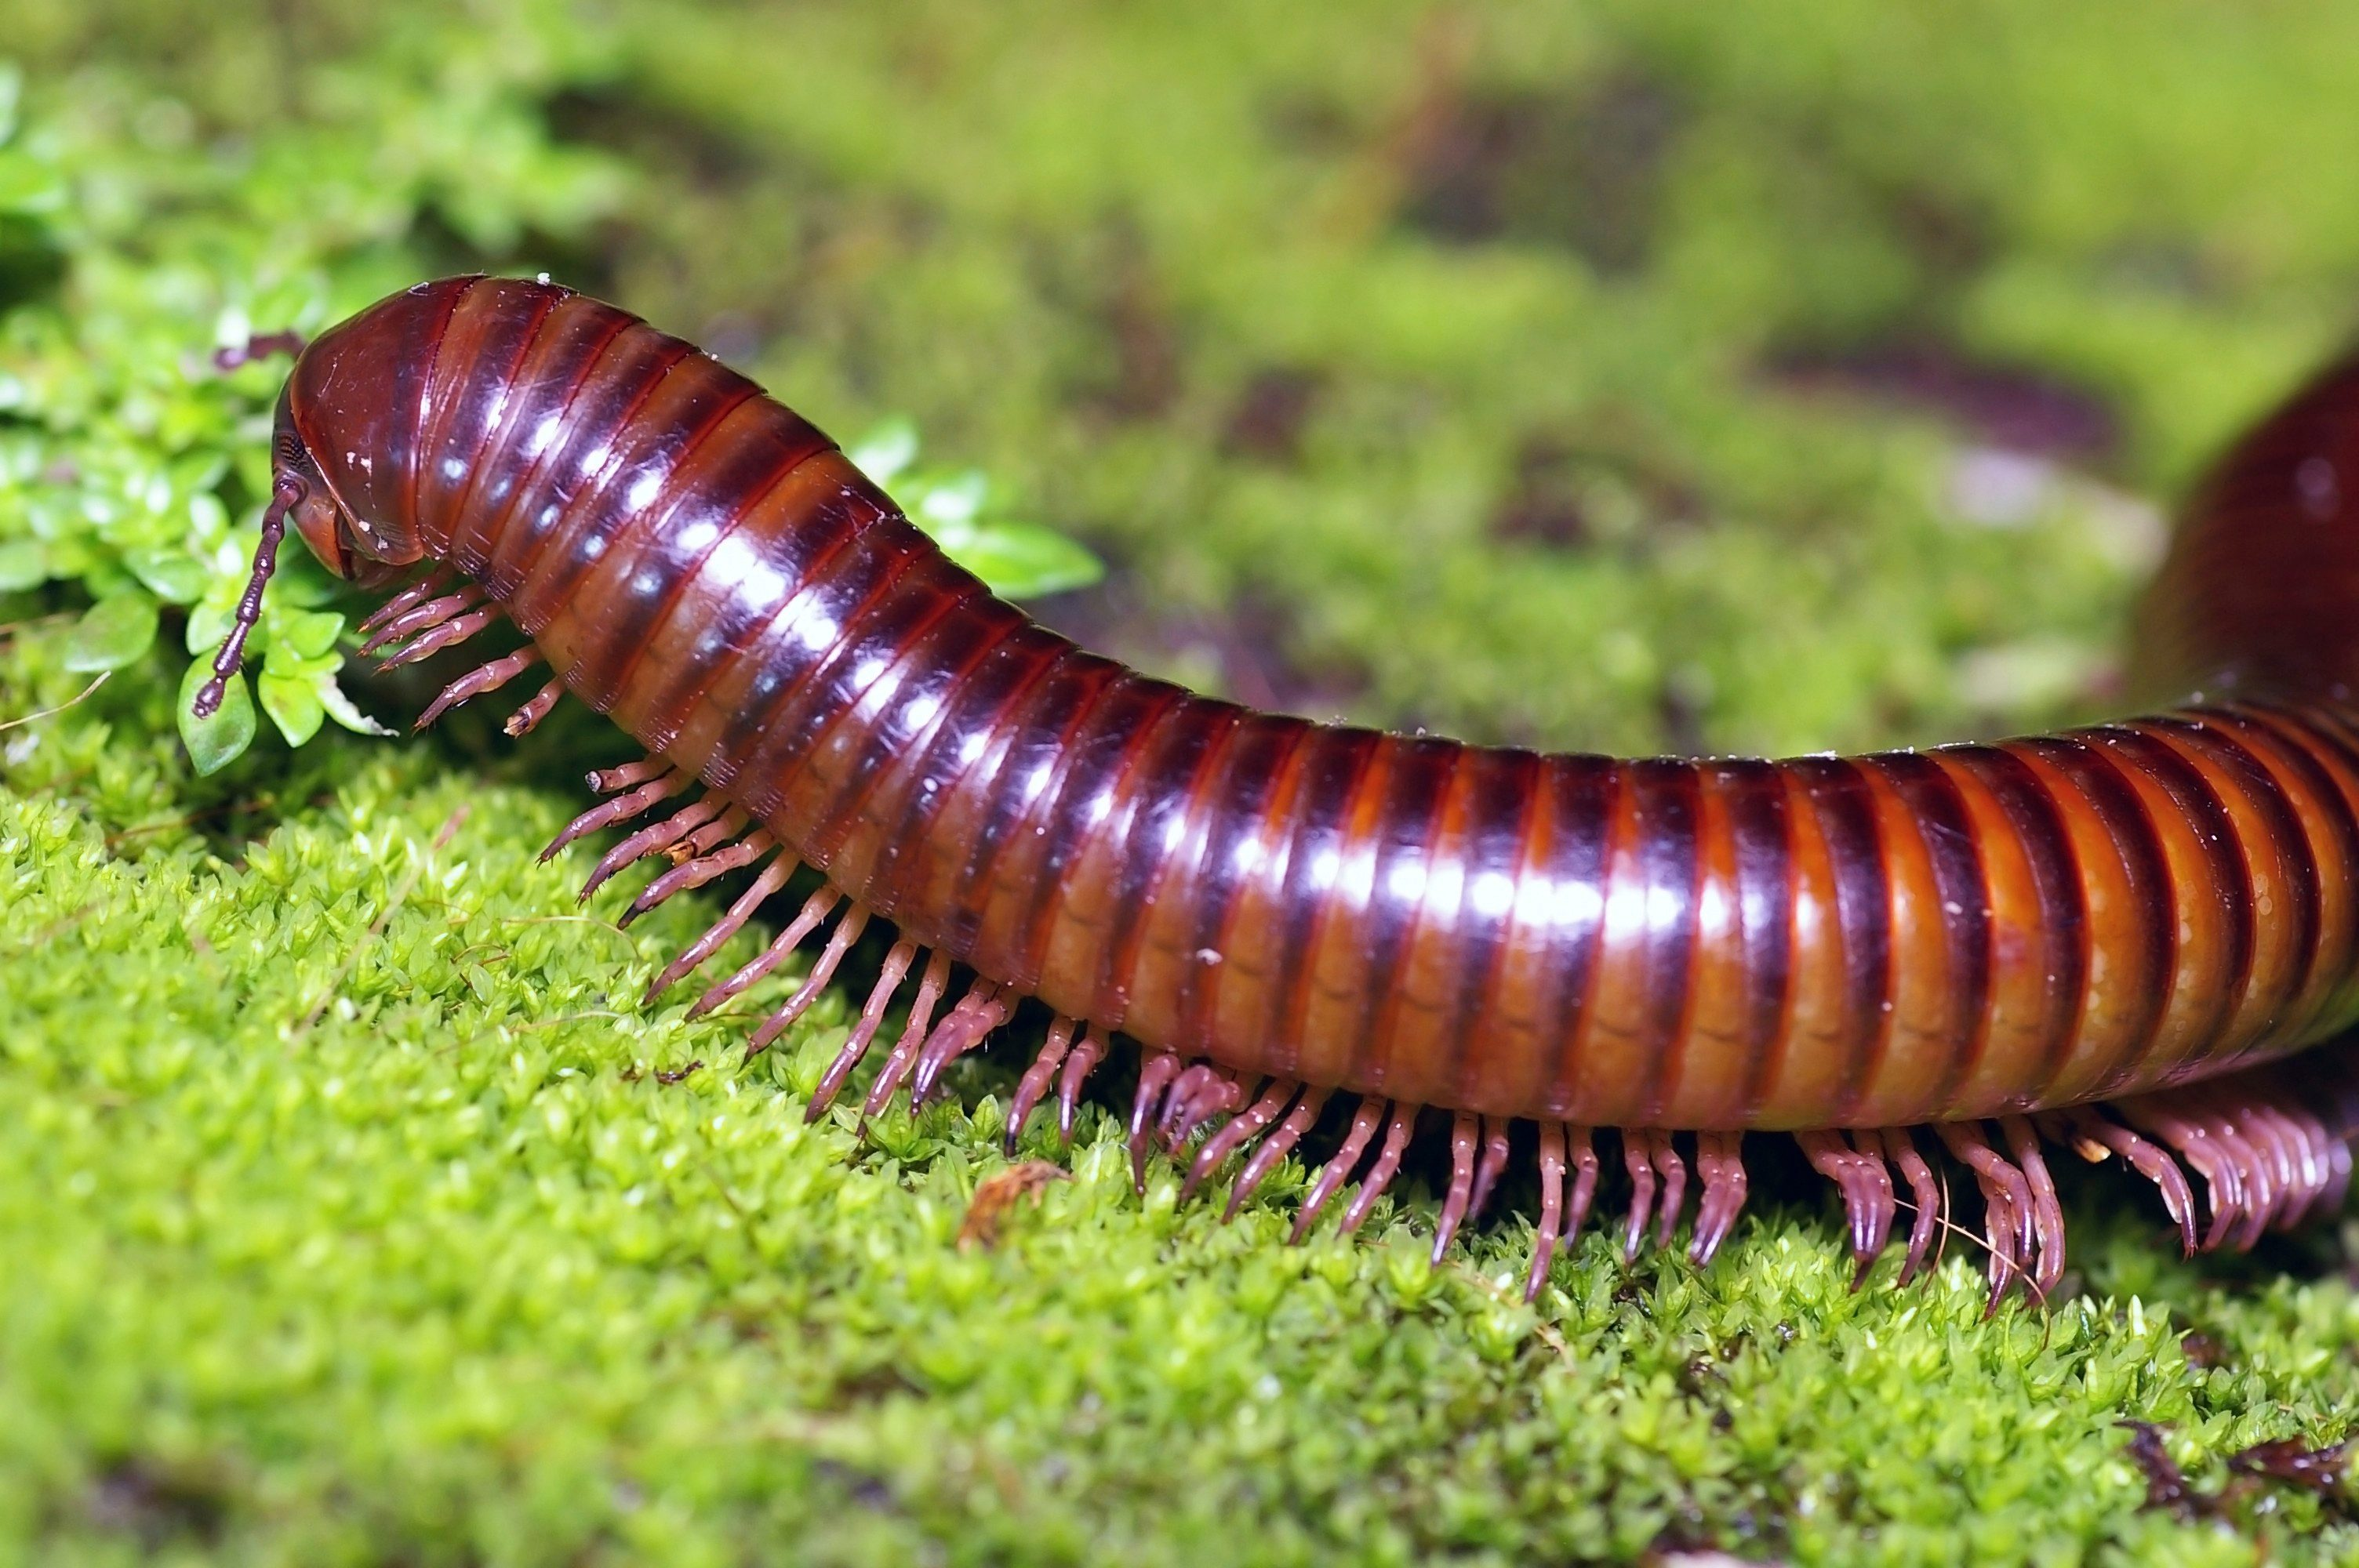 6. The Millipede Does Not Have 1,000 Legs